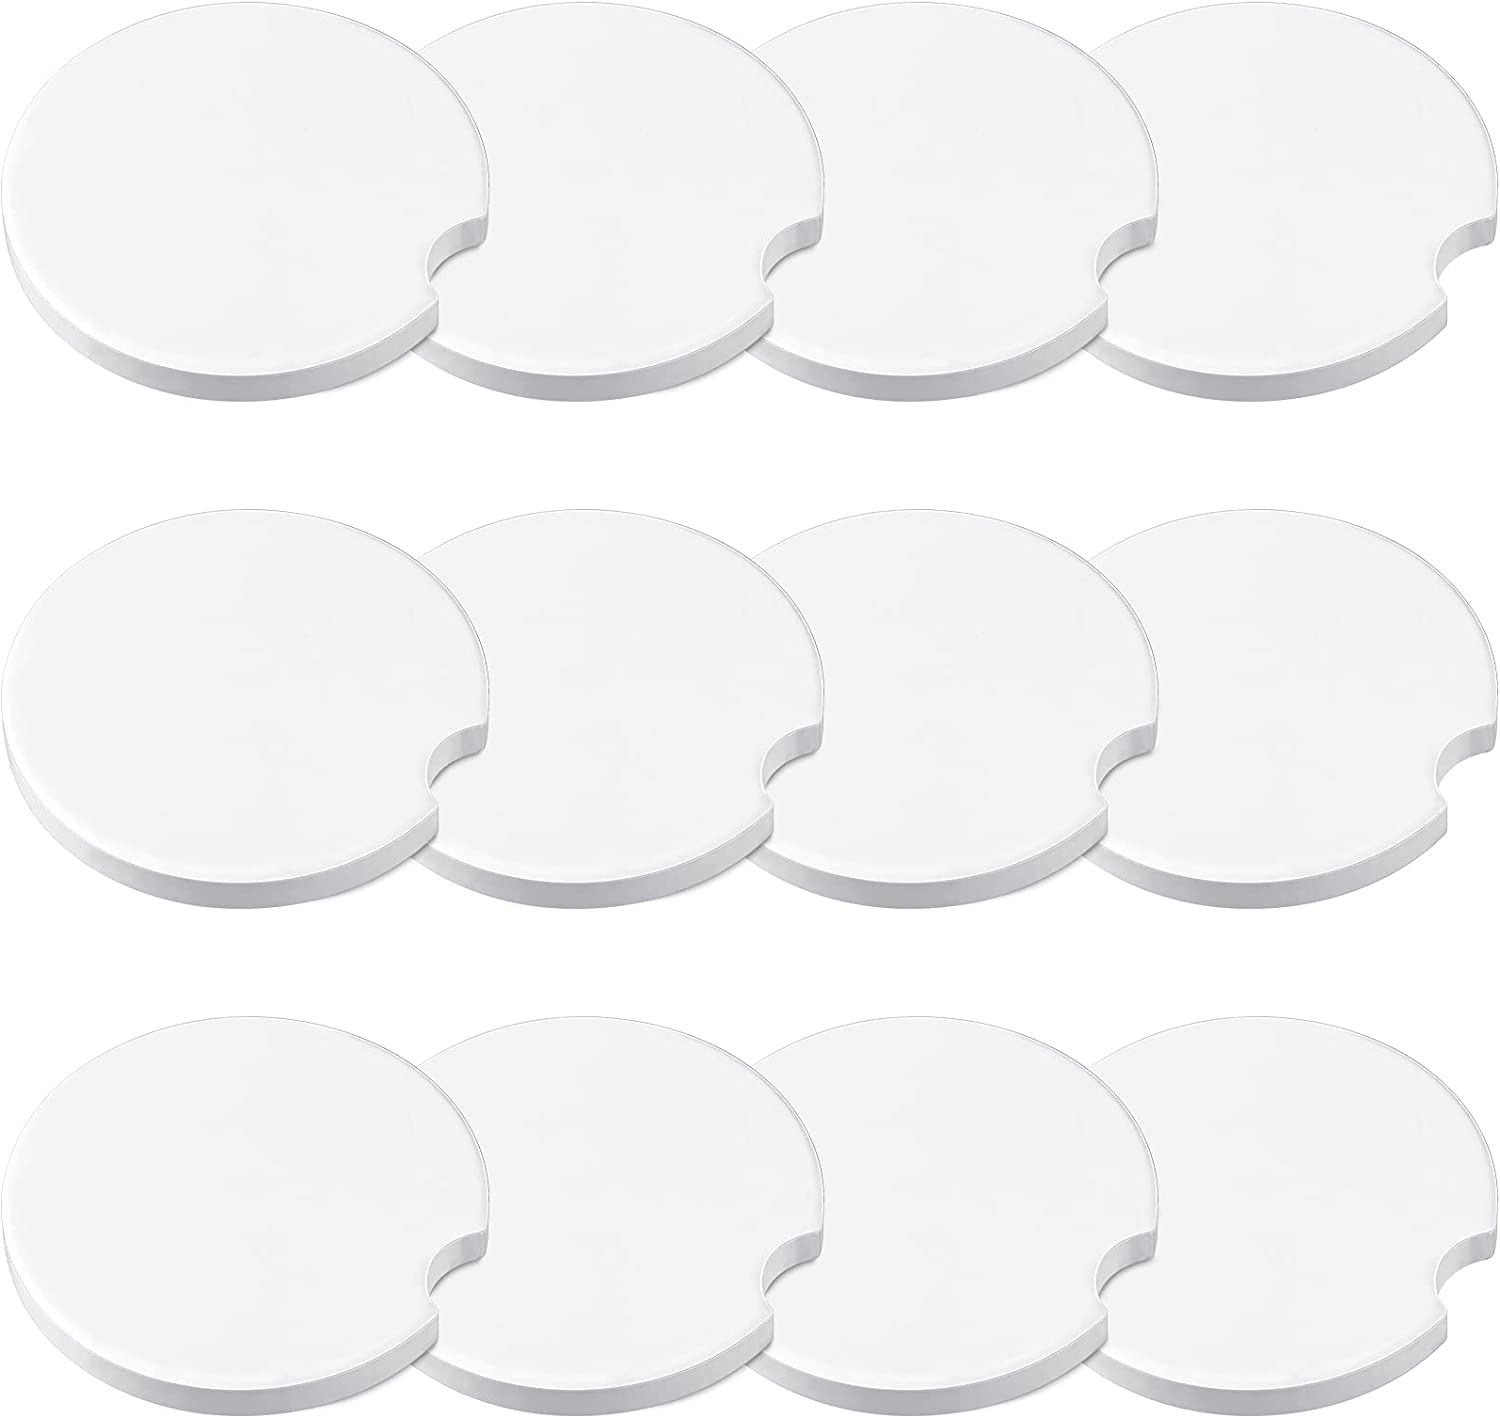 12 Pieces Sublimation Blank Dealing full Fashionable price reduction Car Cup Coasters Notch A with Finger